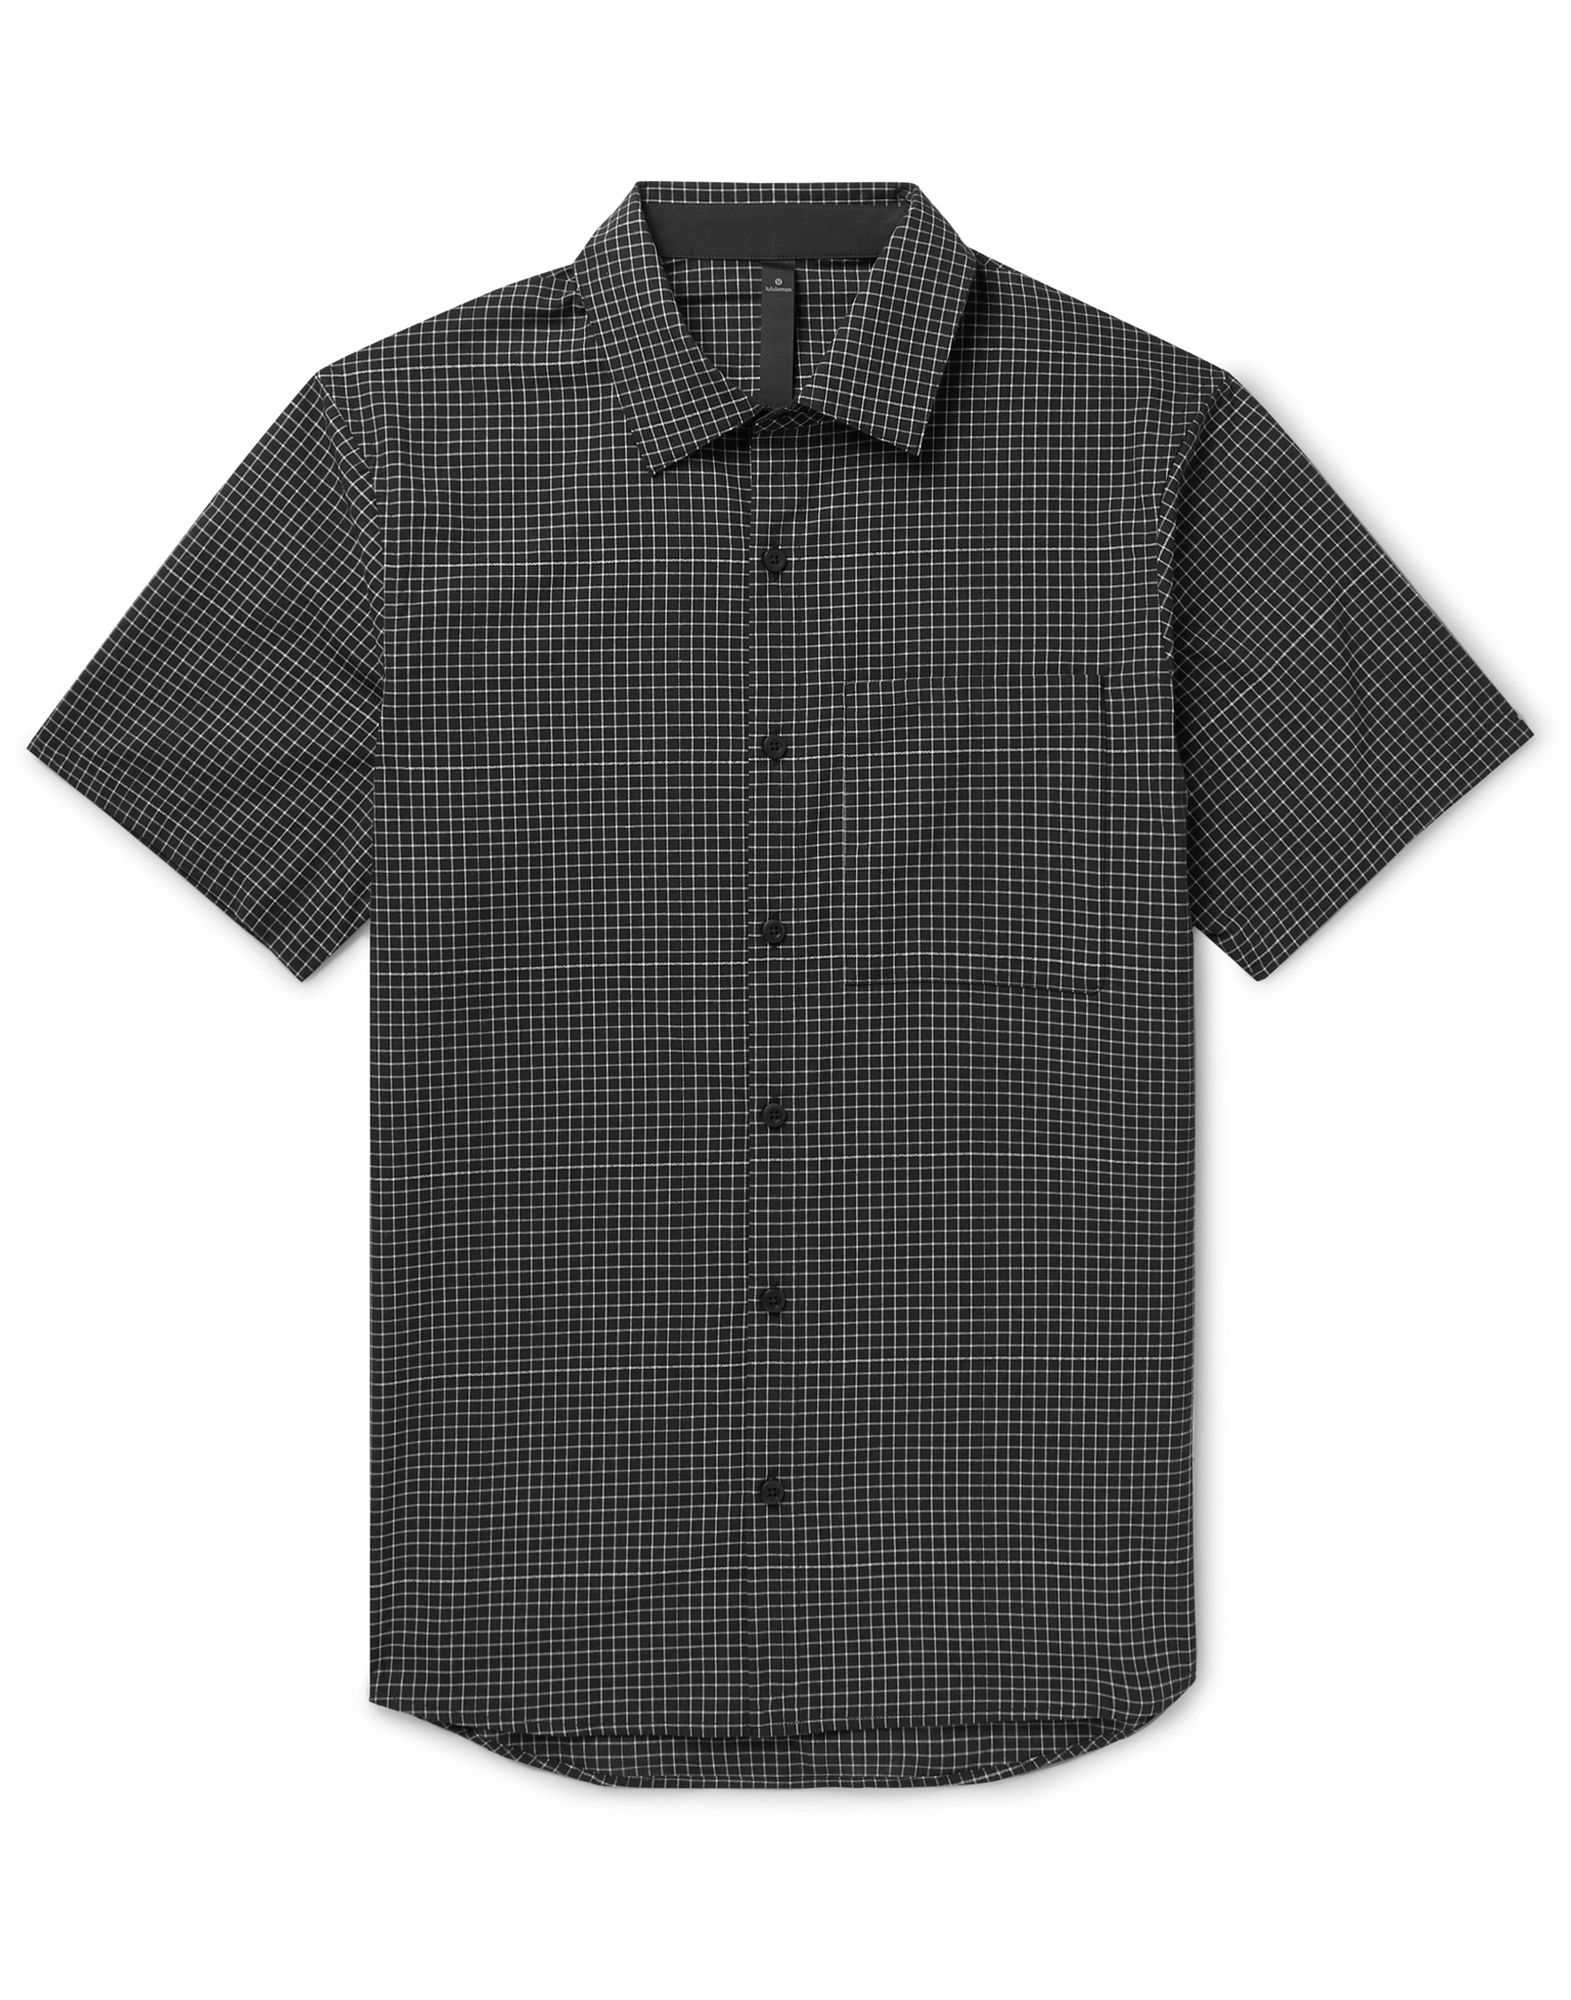 LULULEMON Shirts. plain weave, no appliqués, checked, front closure, button closing, short sleeves, classic neckline, single chest pocket. 65% Recycled polyester, 35% Organic cotton